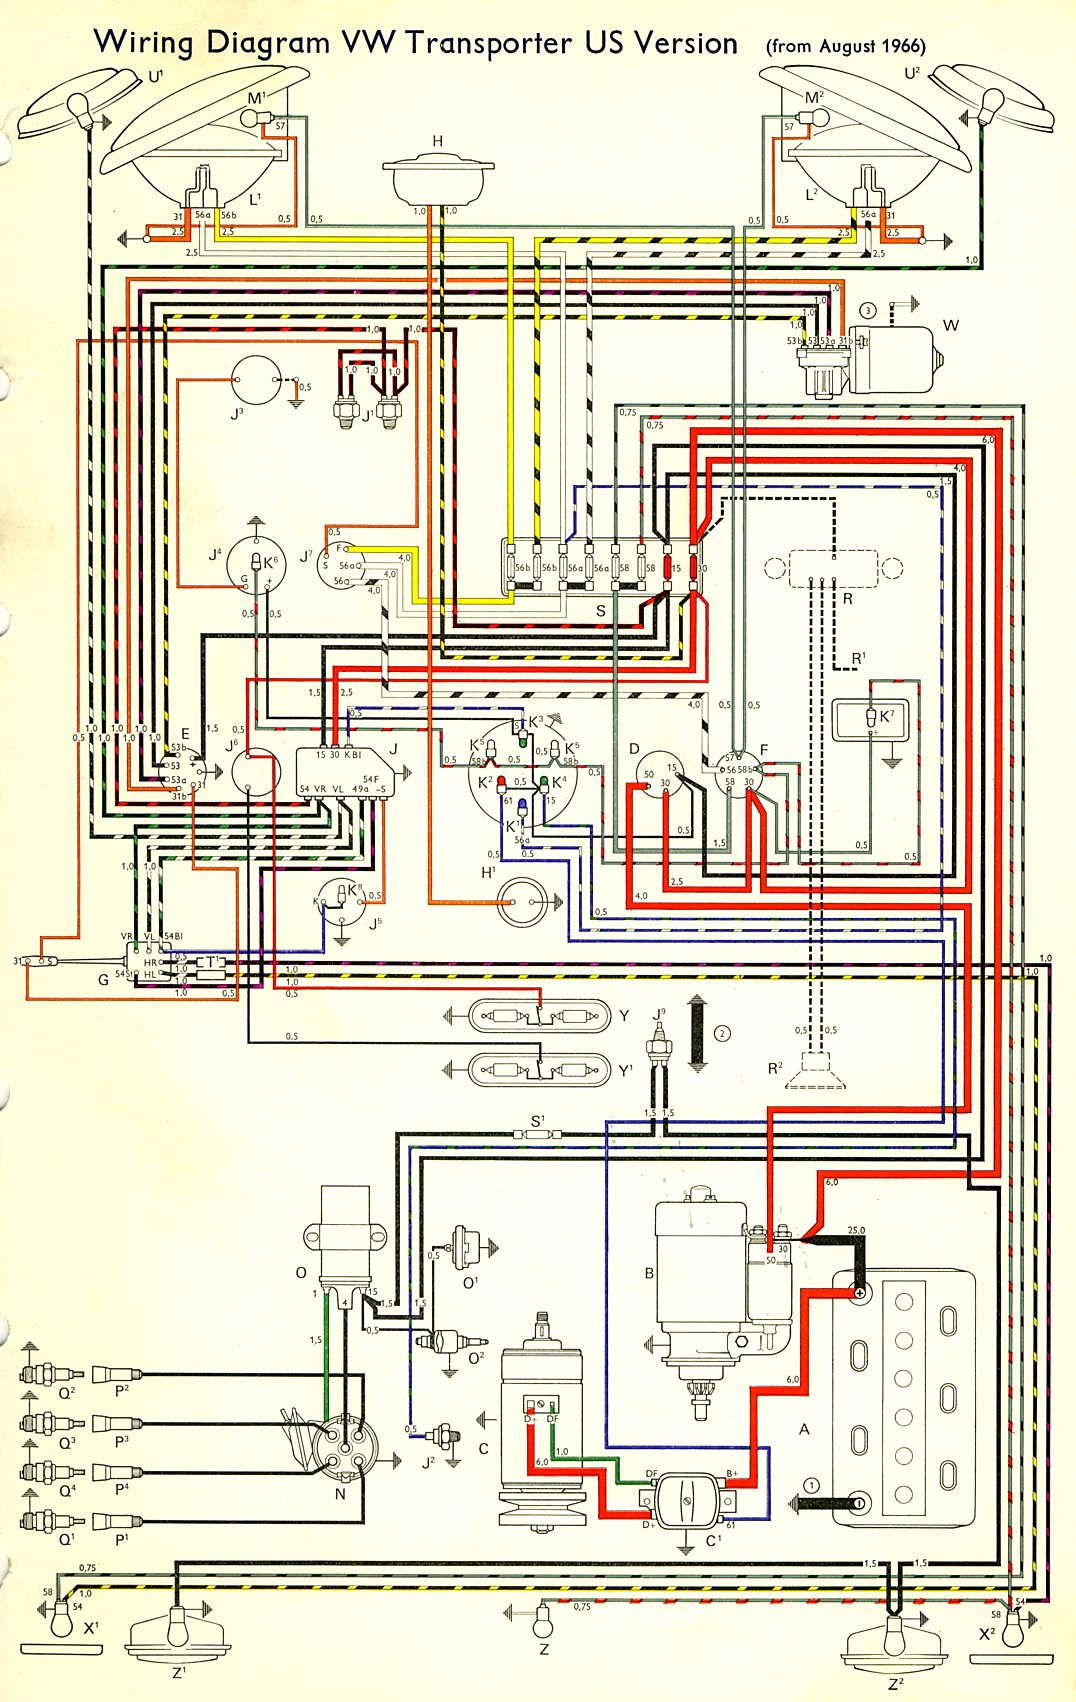 bus_67_USA thesamba com type 2 wiring diagrams vw t5 wiring diagram at crackthecode.co